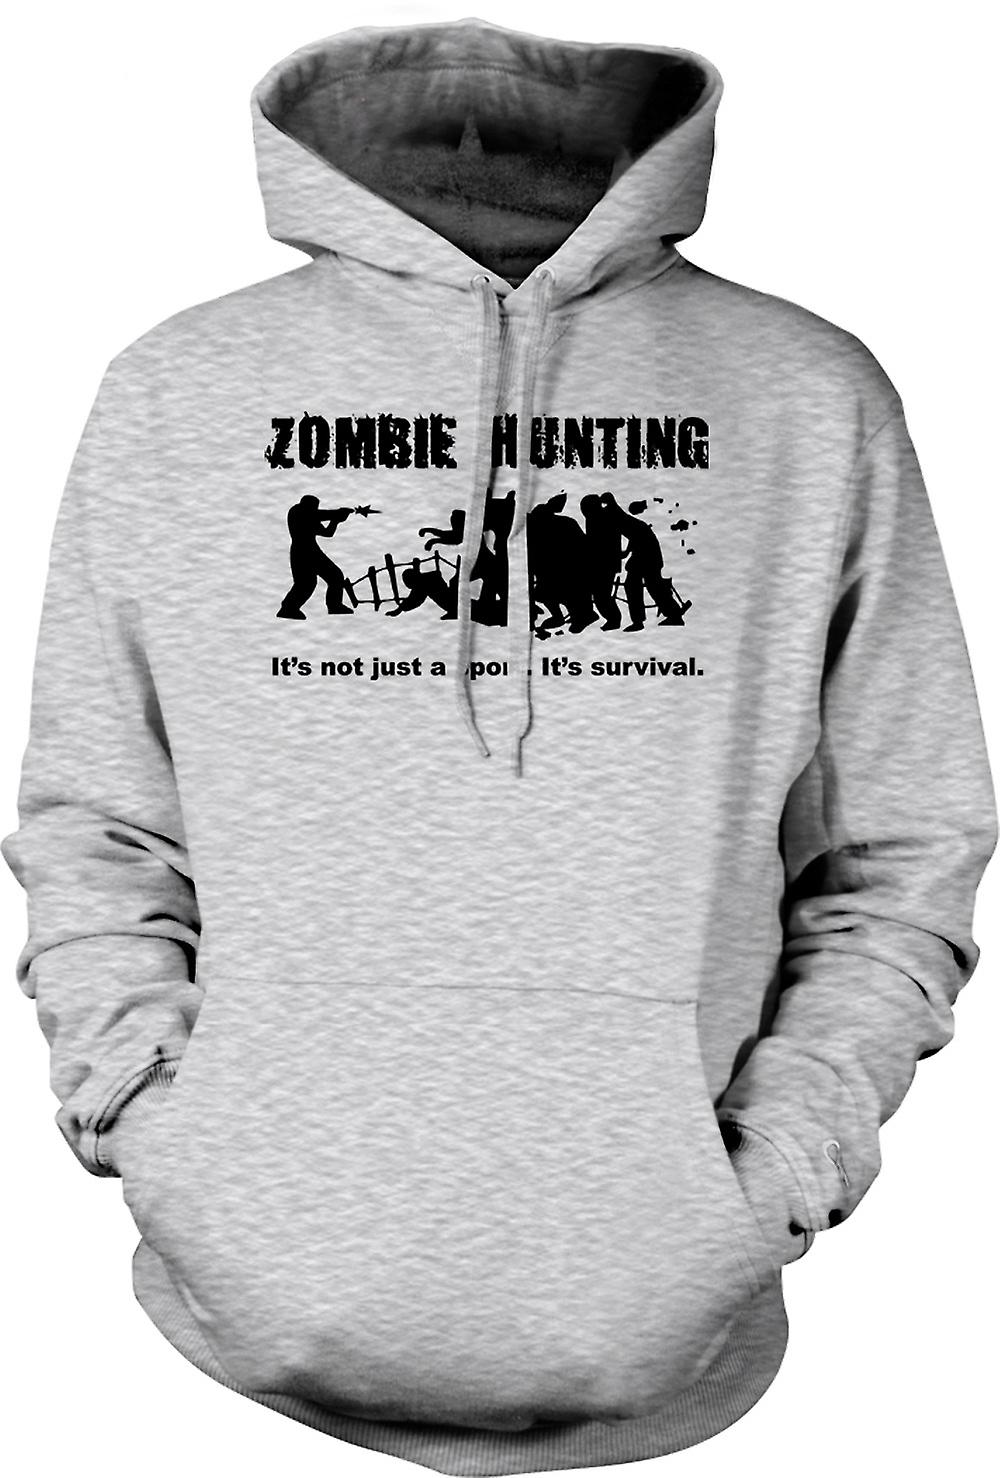 Mens Hoodie - Zombie Hunting Sport - Comedy Horror